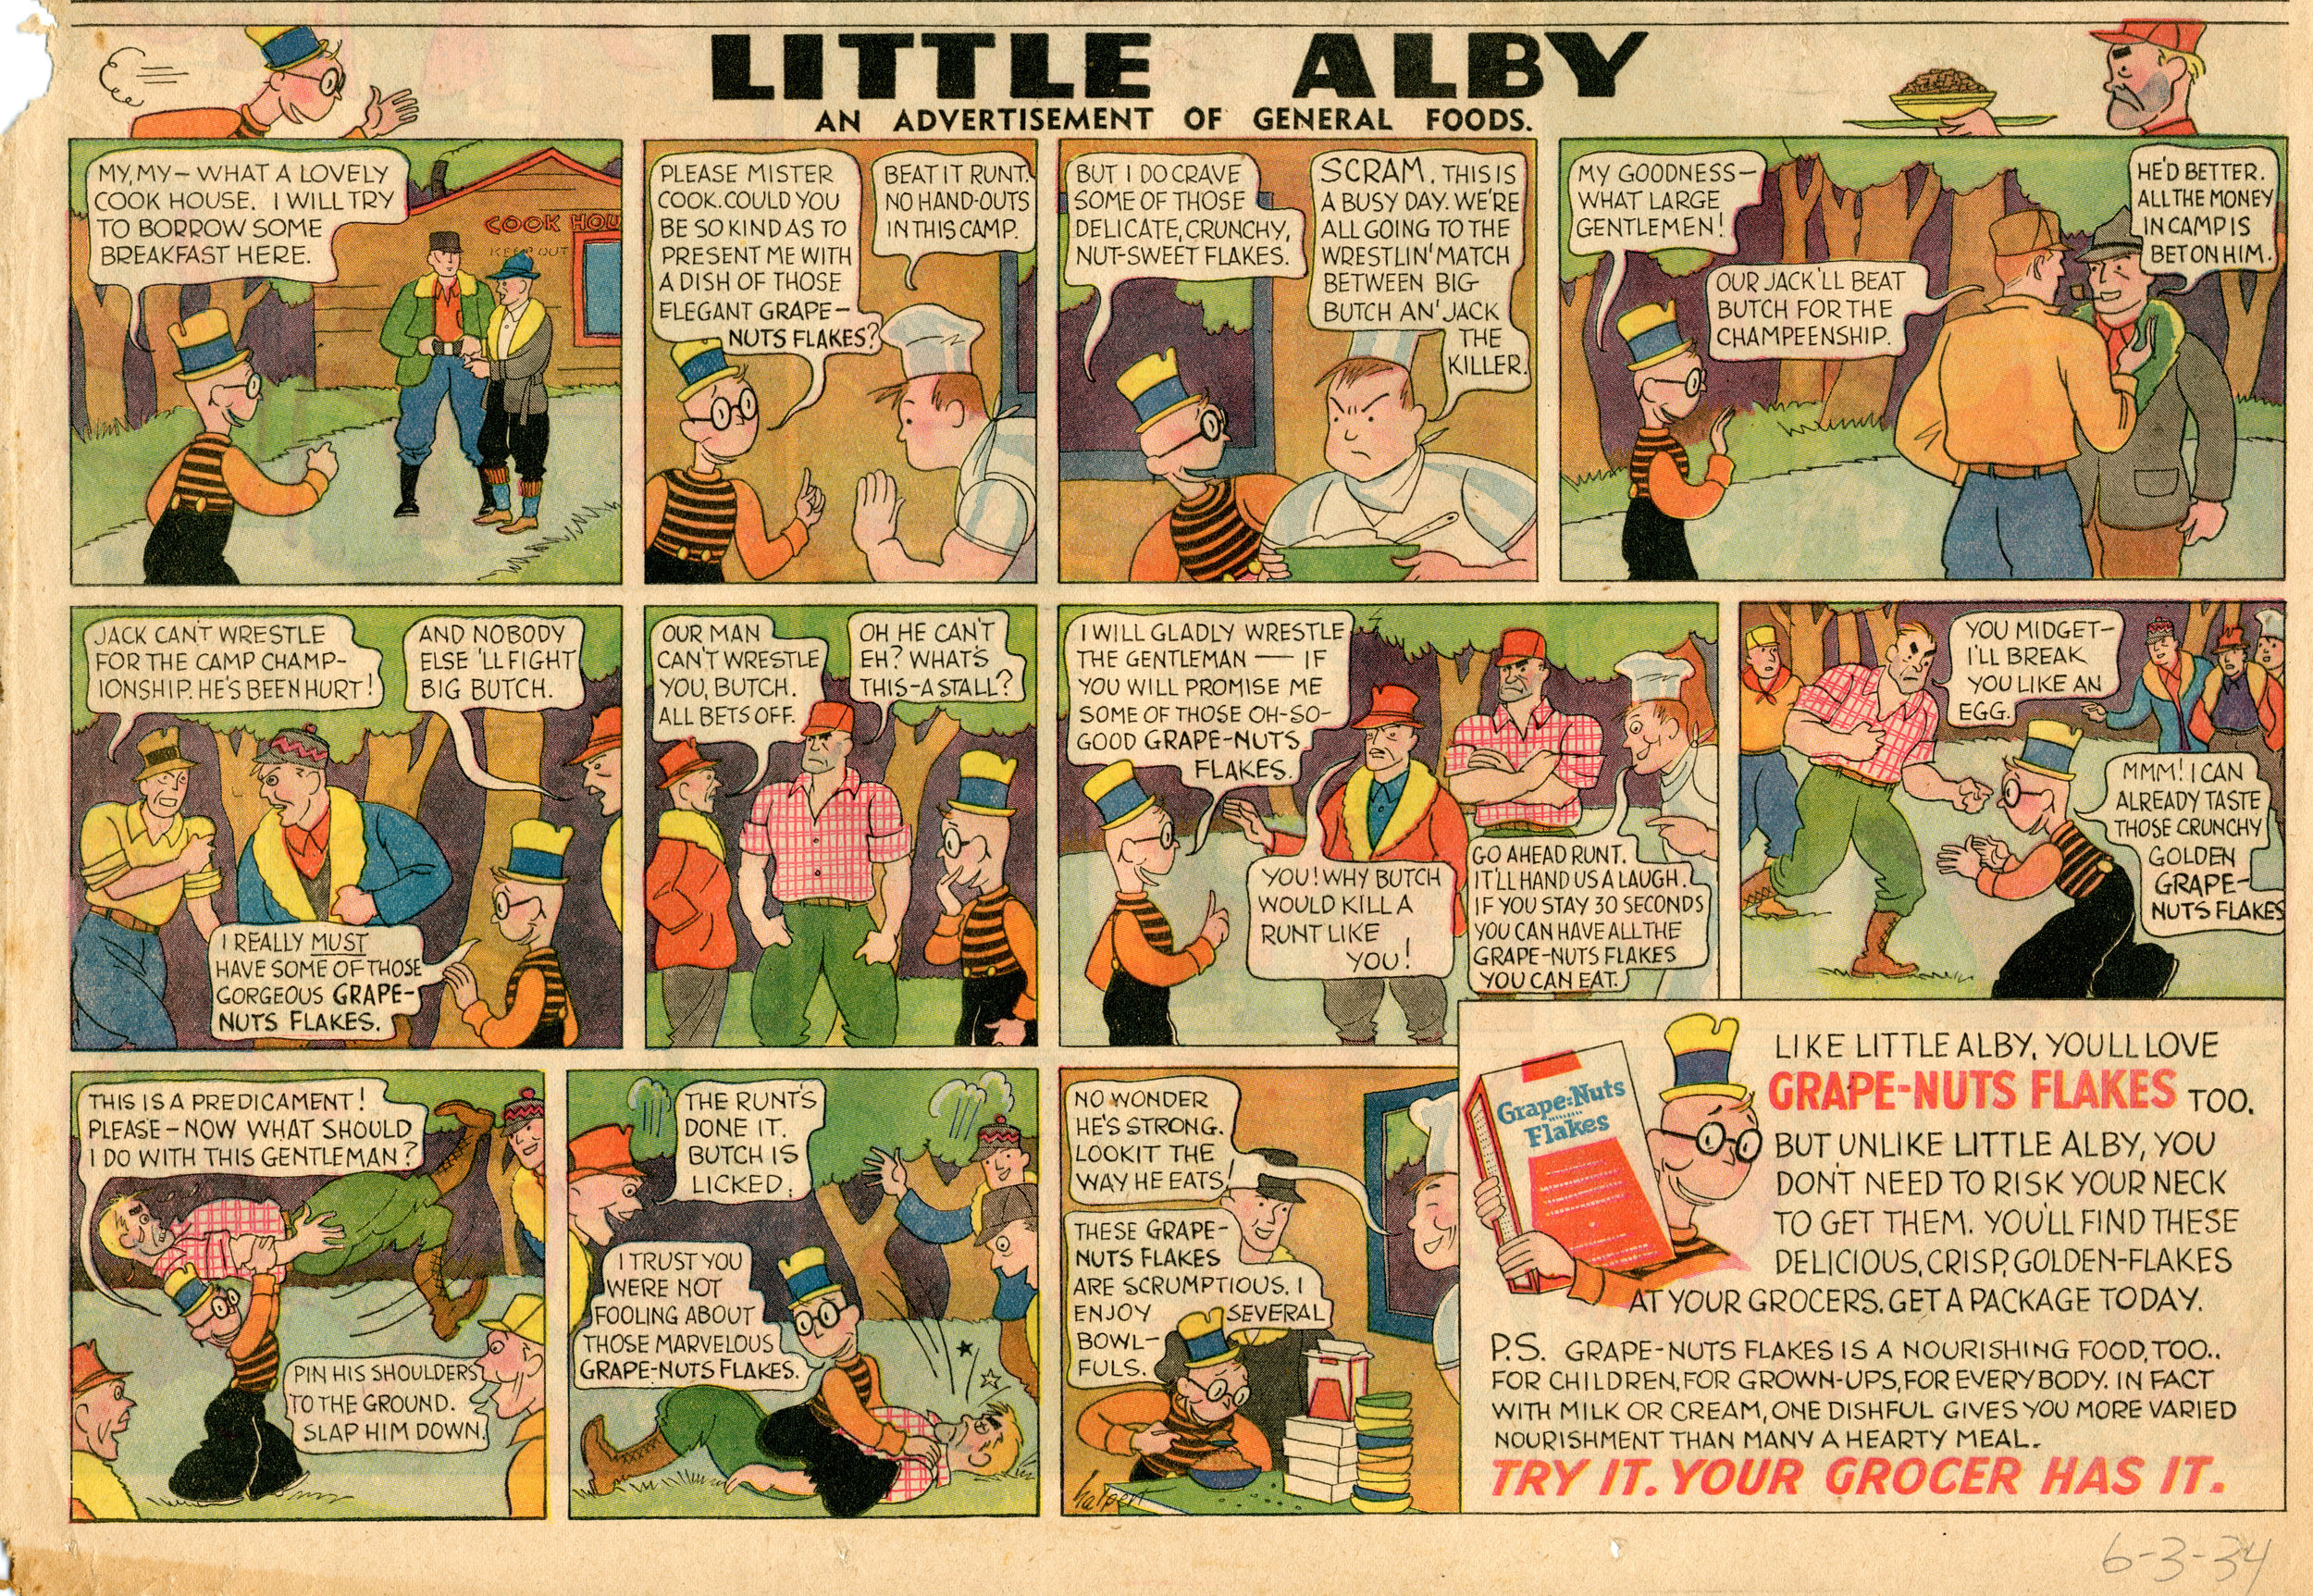 Little Alby, June 3, 1934